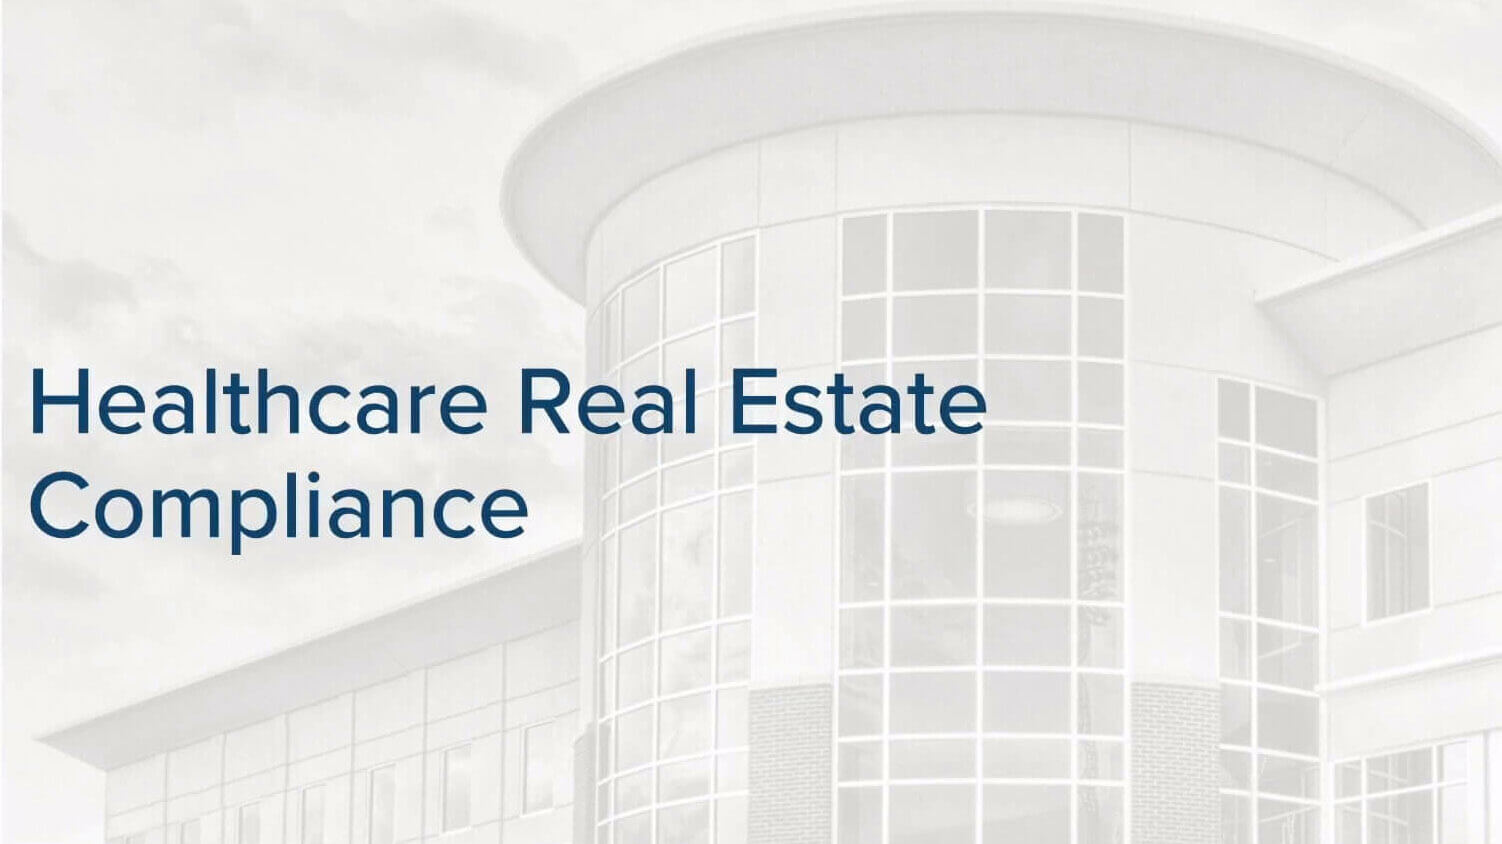 Healthcare Real Estate Compliance Services